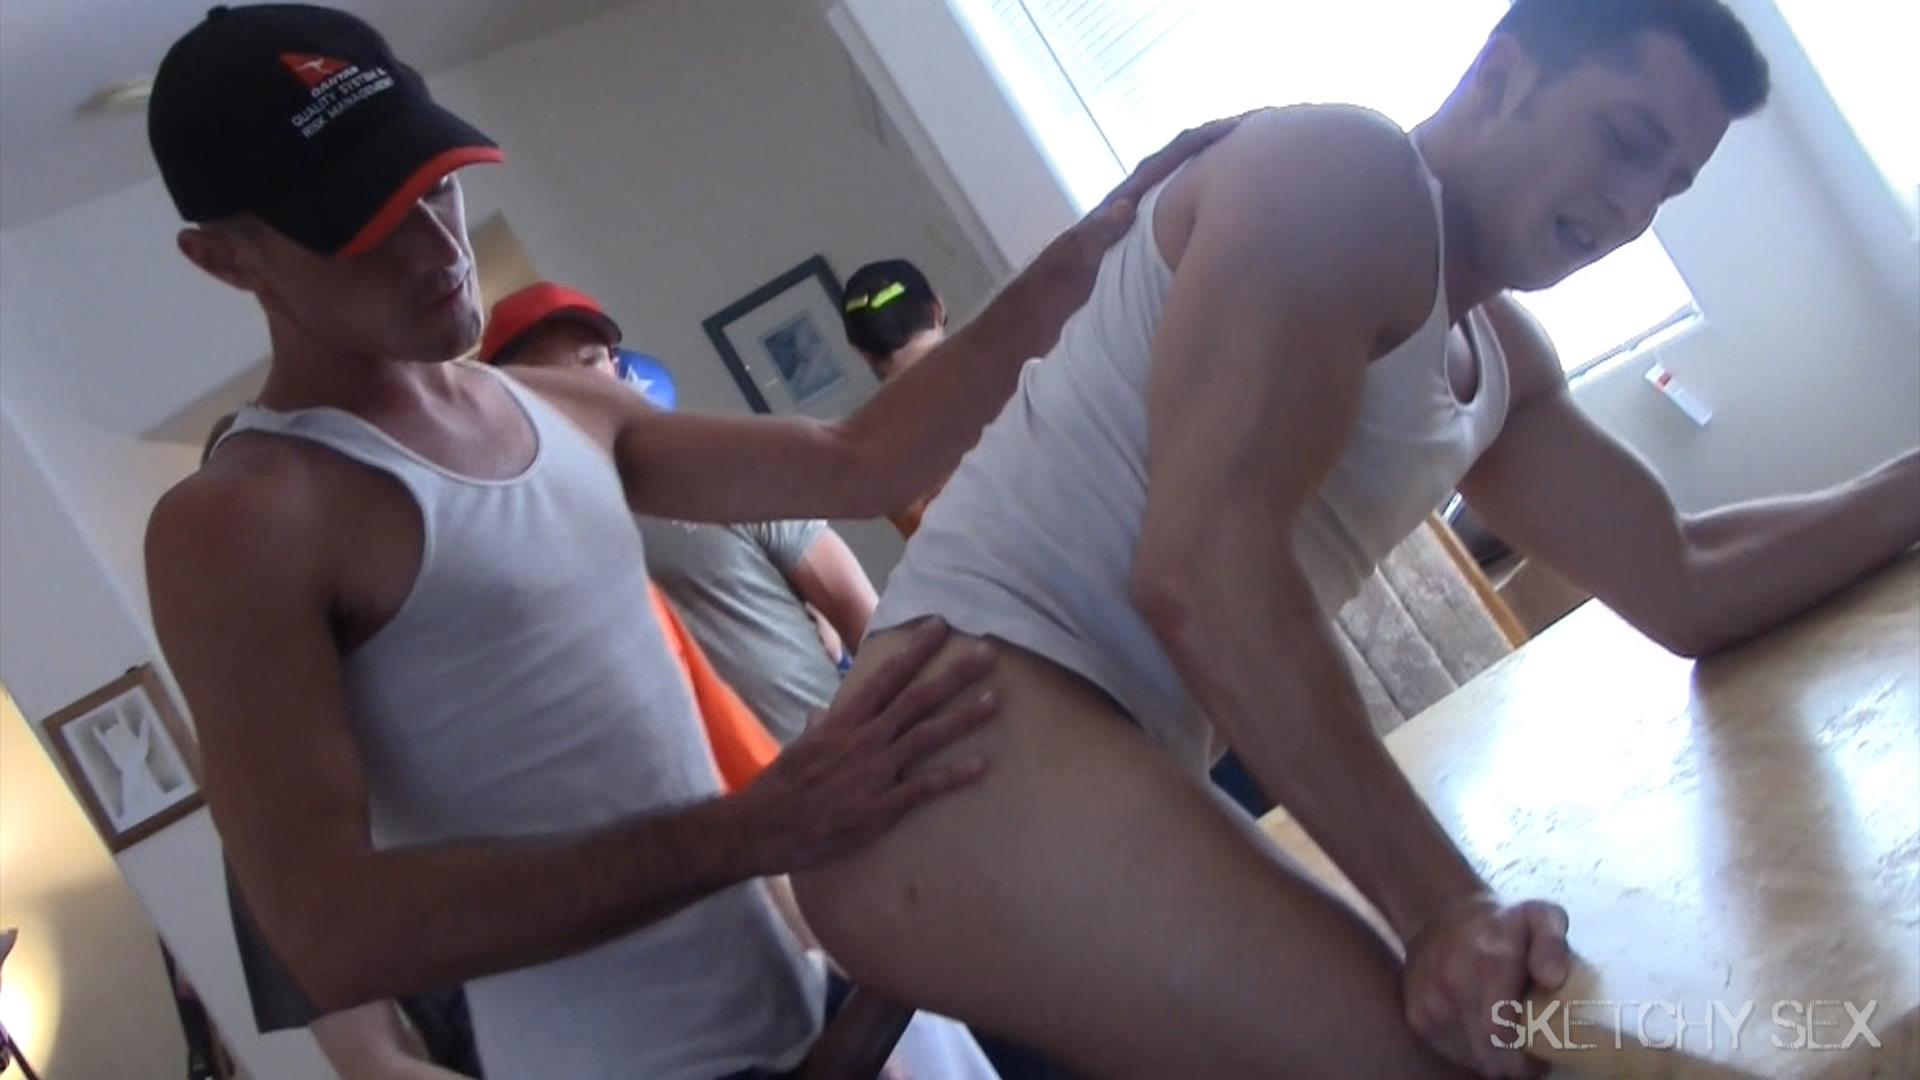 Sketchy-Sex-Bareback-Breeding-A-College-Guy-Amateur-Gay-Porn-12 Guys Lining Up At The Door Take Turns Breeding A Horny College Guy